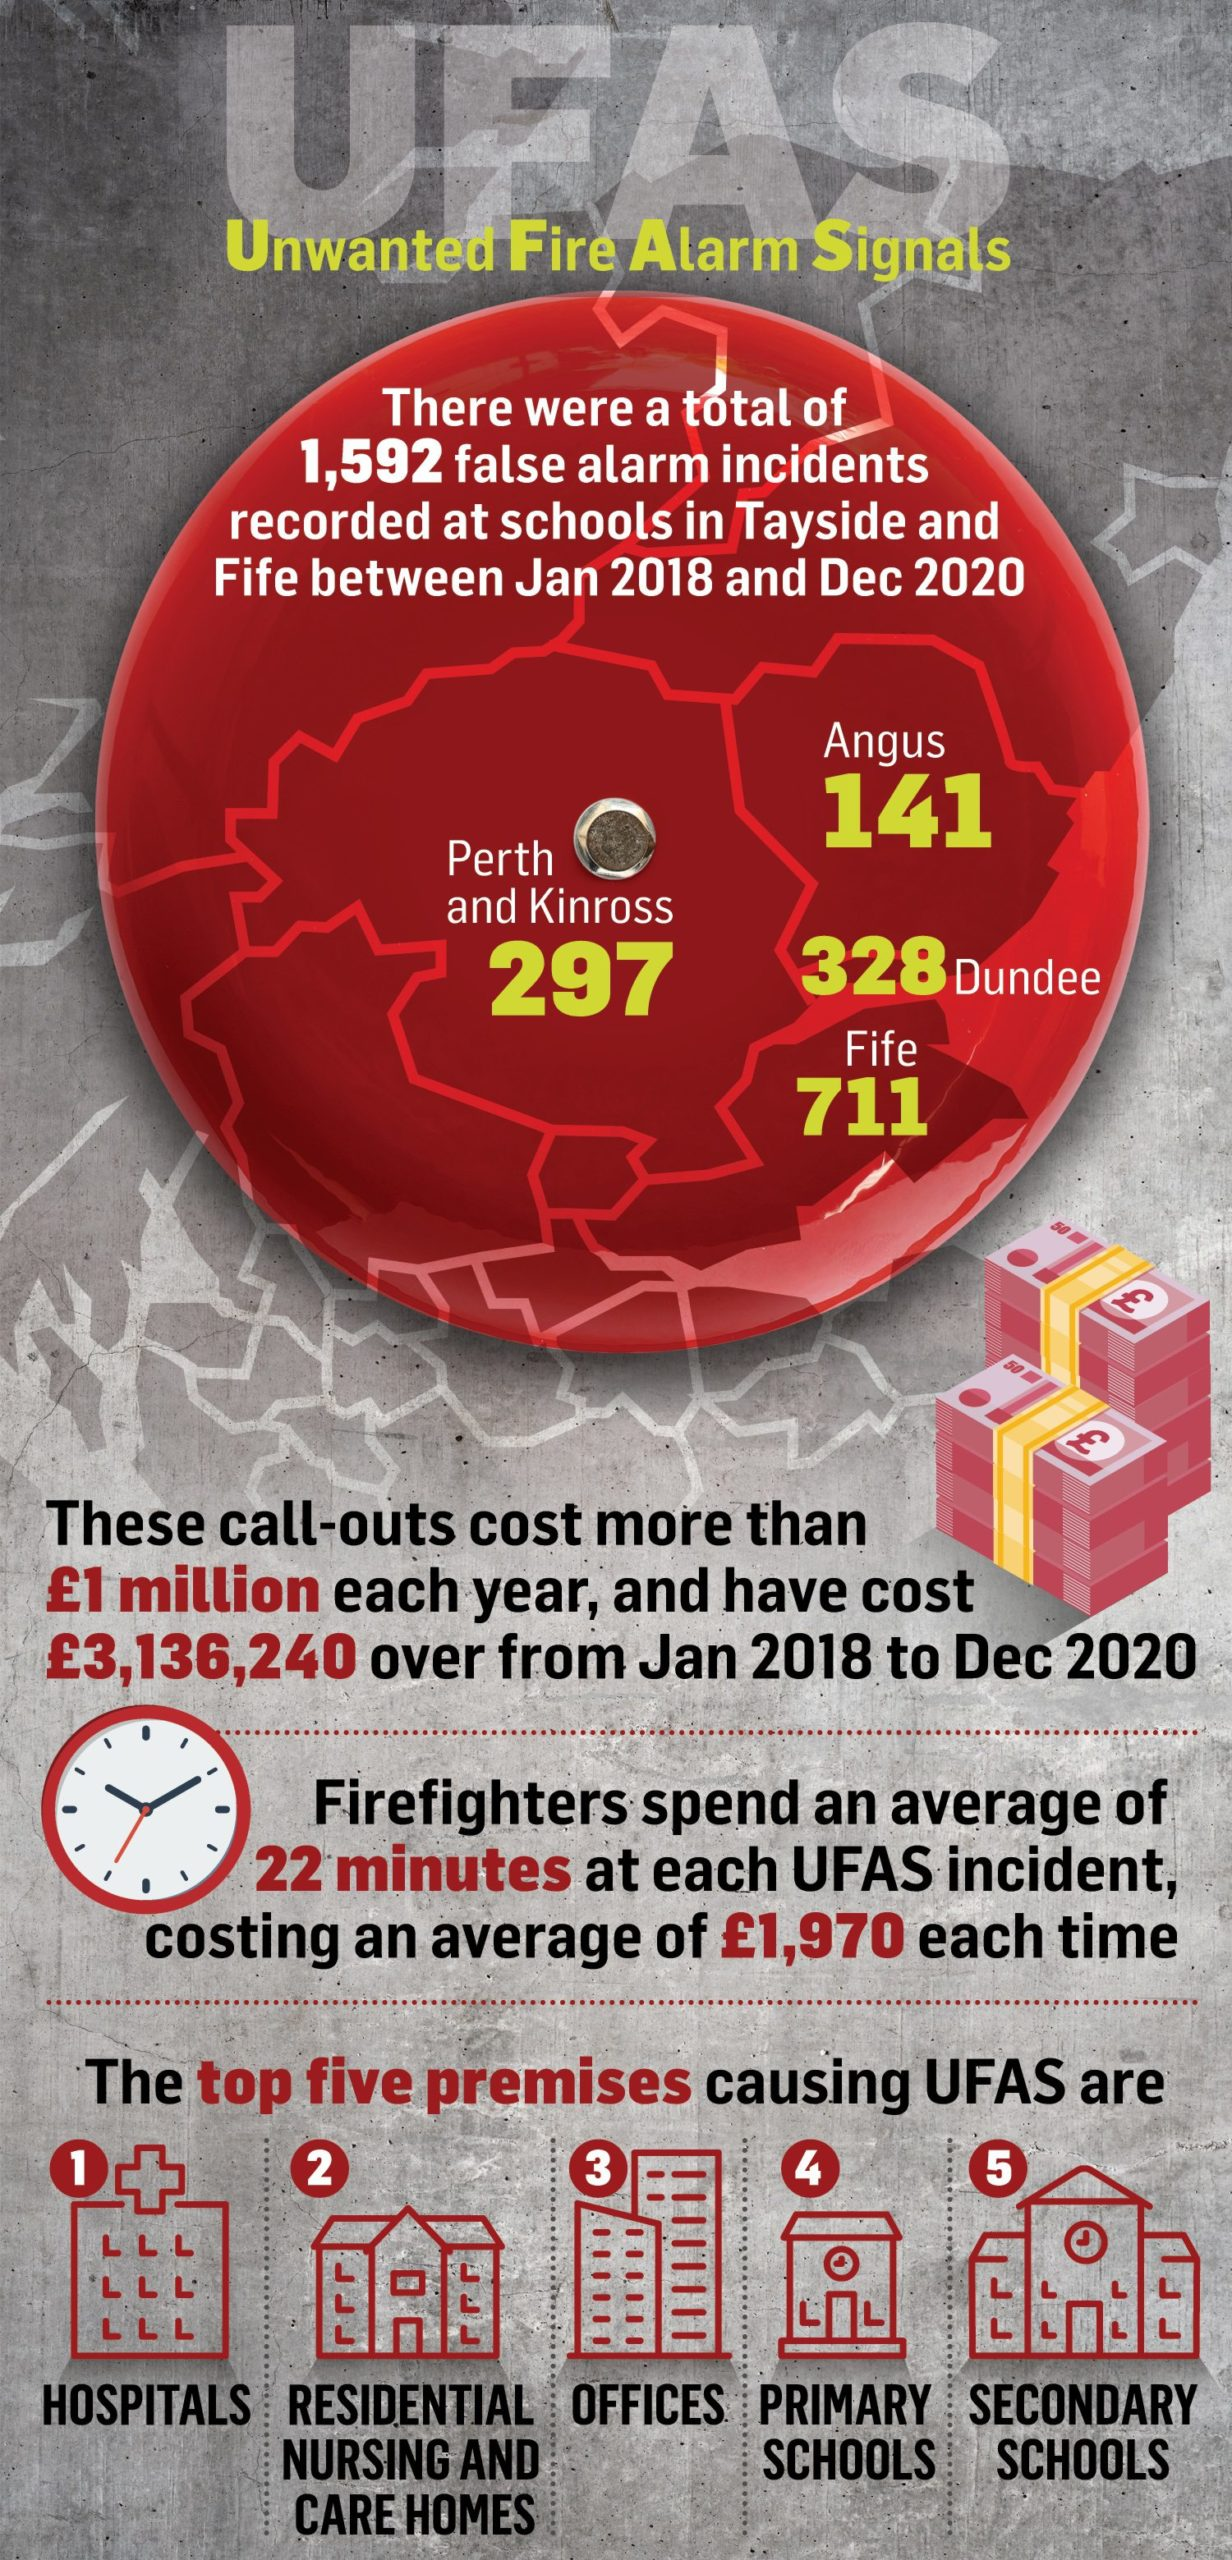 A graphic showing the number of false fire alarms in Tayside and Fife between 2018 and 2020